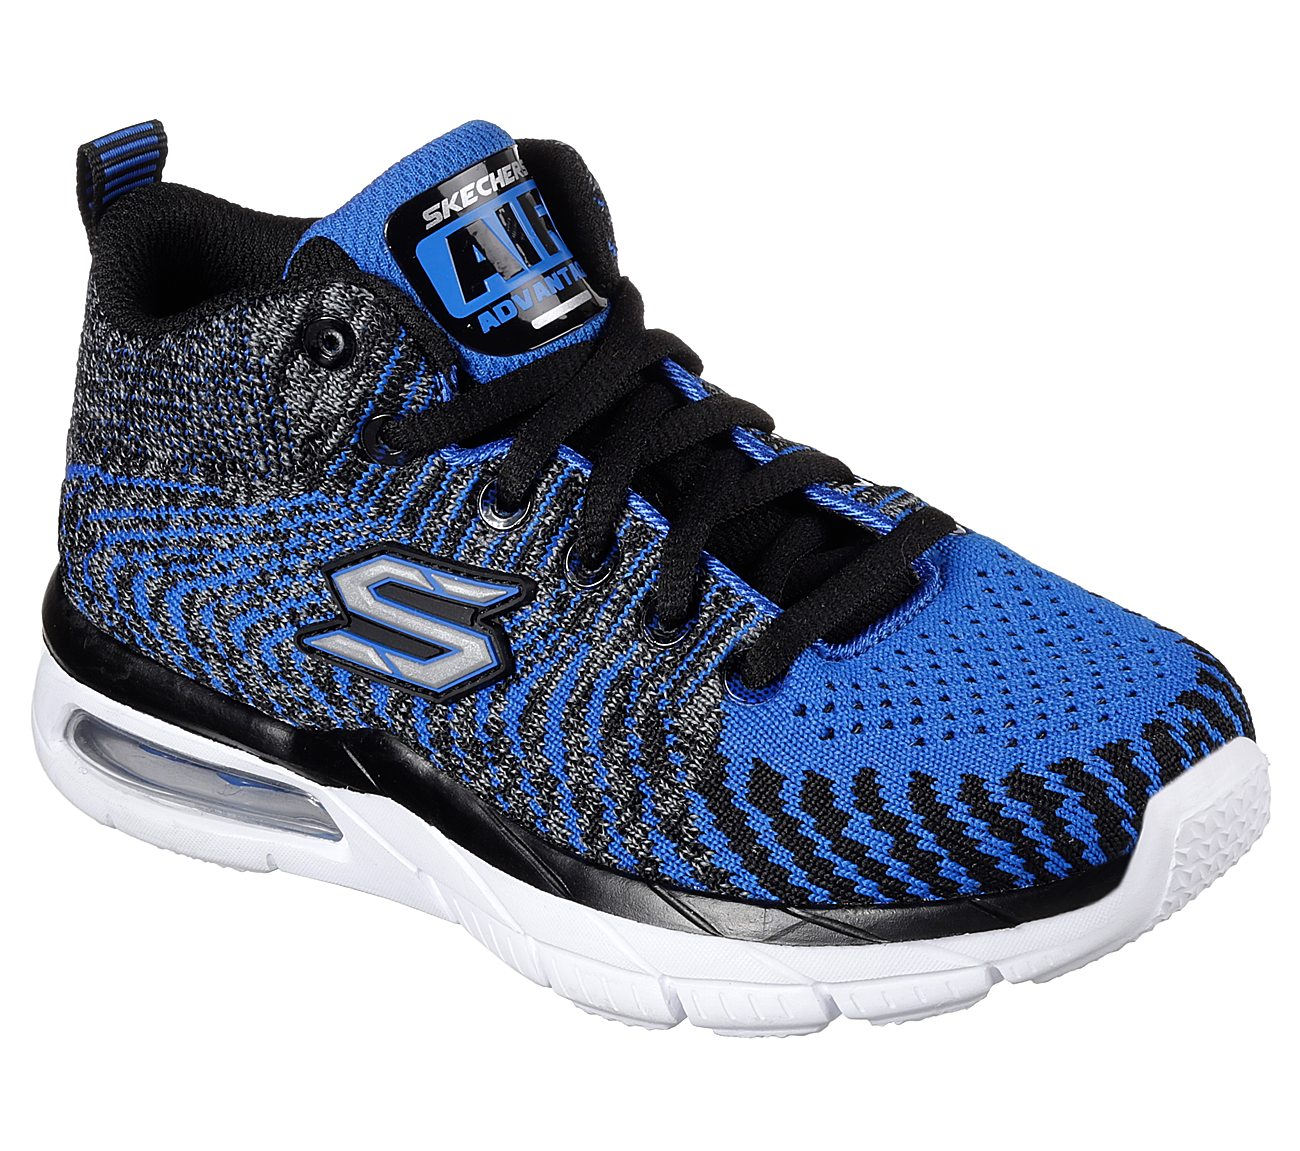 b2162ab16aeb Buy SKECHERS Air Advantage - Final Lap Sport Shoes only  55.00